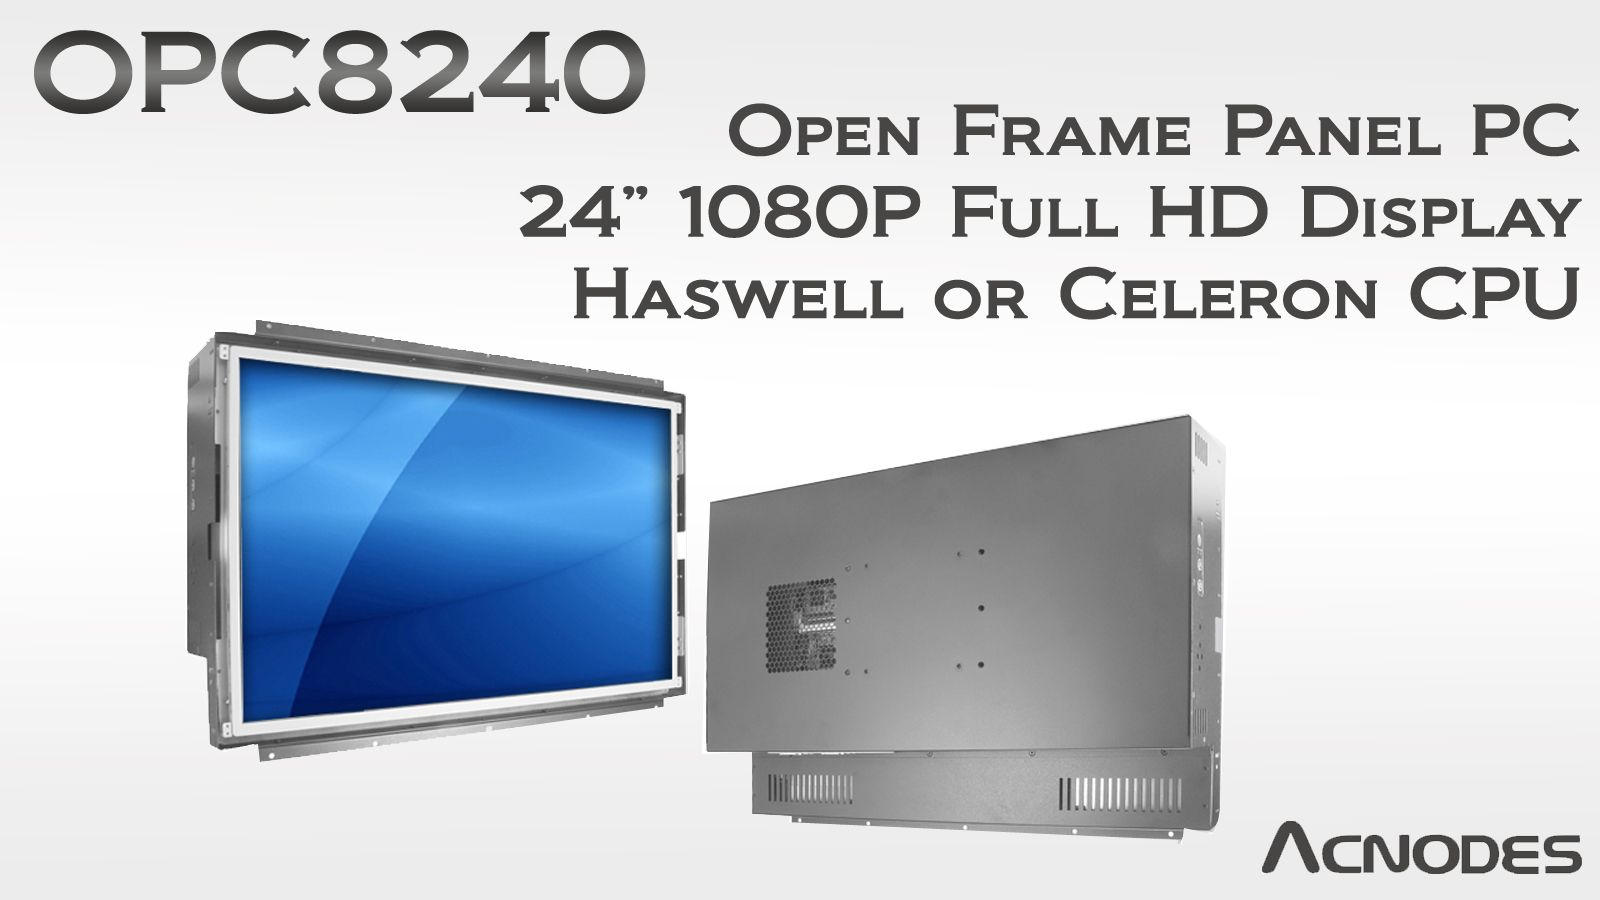 Open Frame Panel Pc Features Haswell Or Celeron Embedded Pc Open Frame Paneling Frame